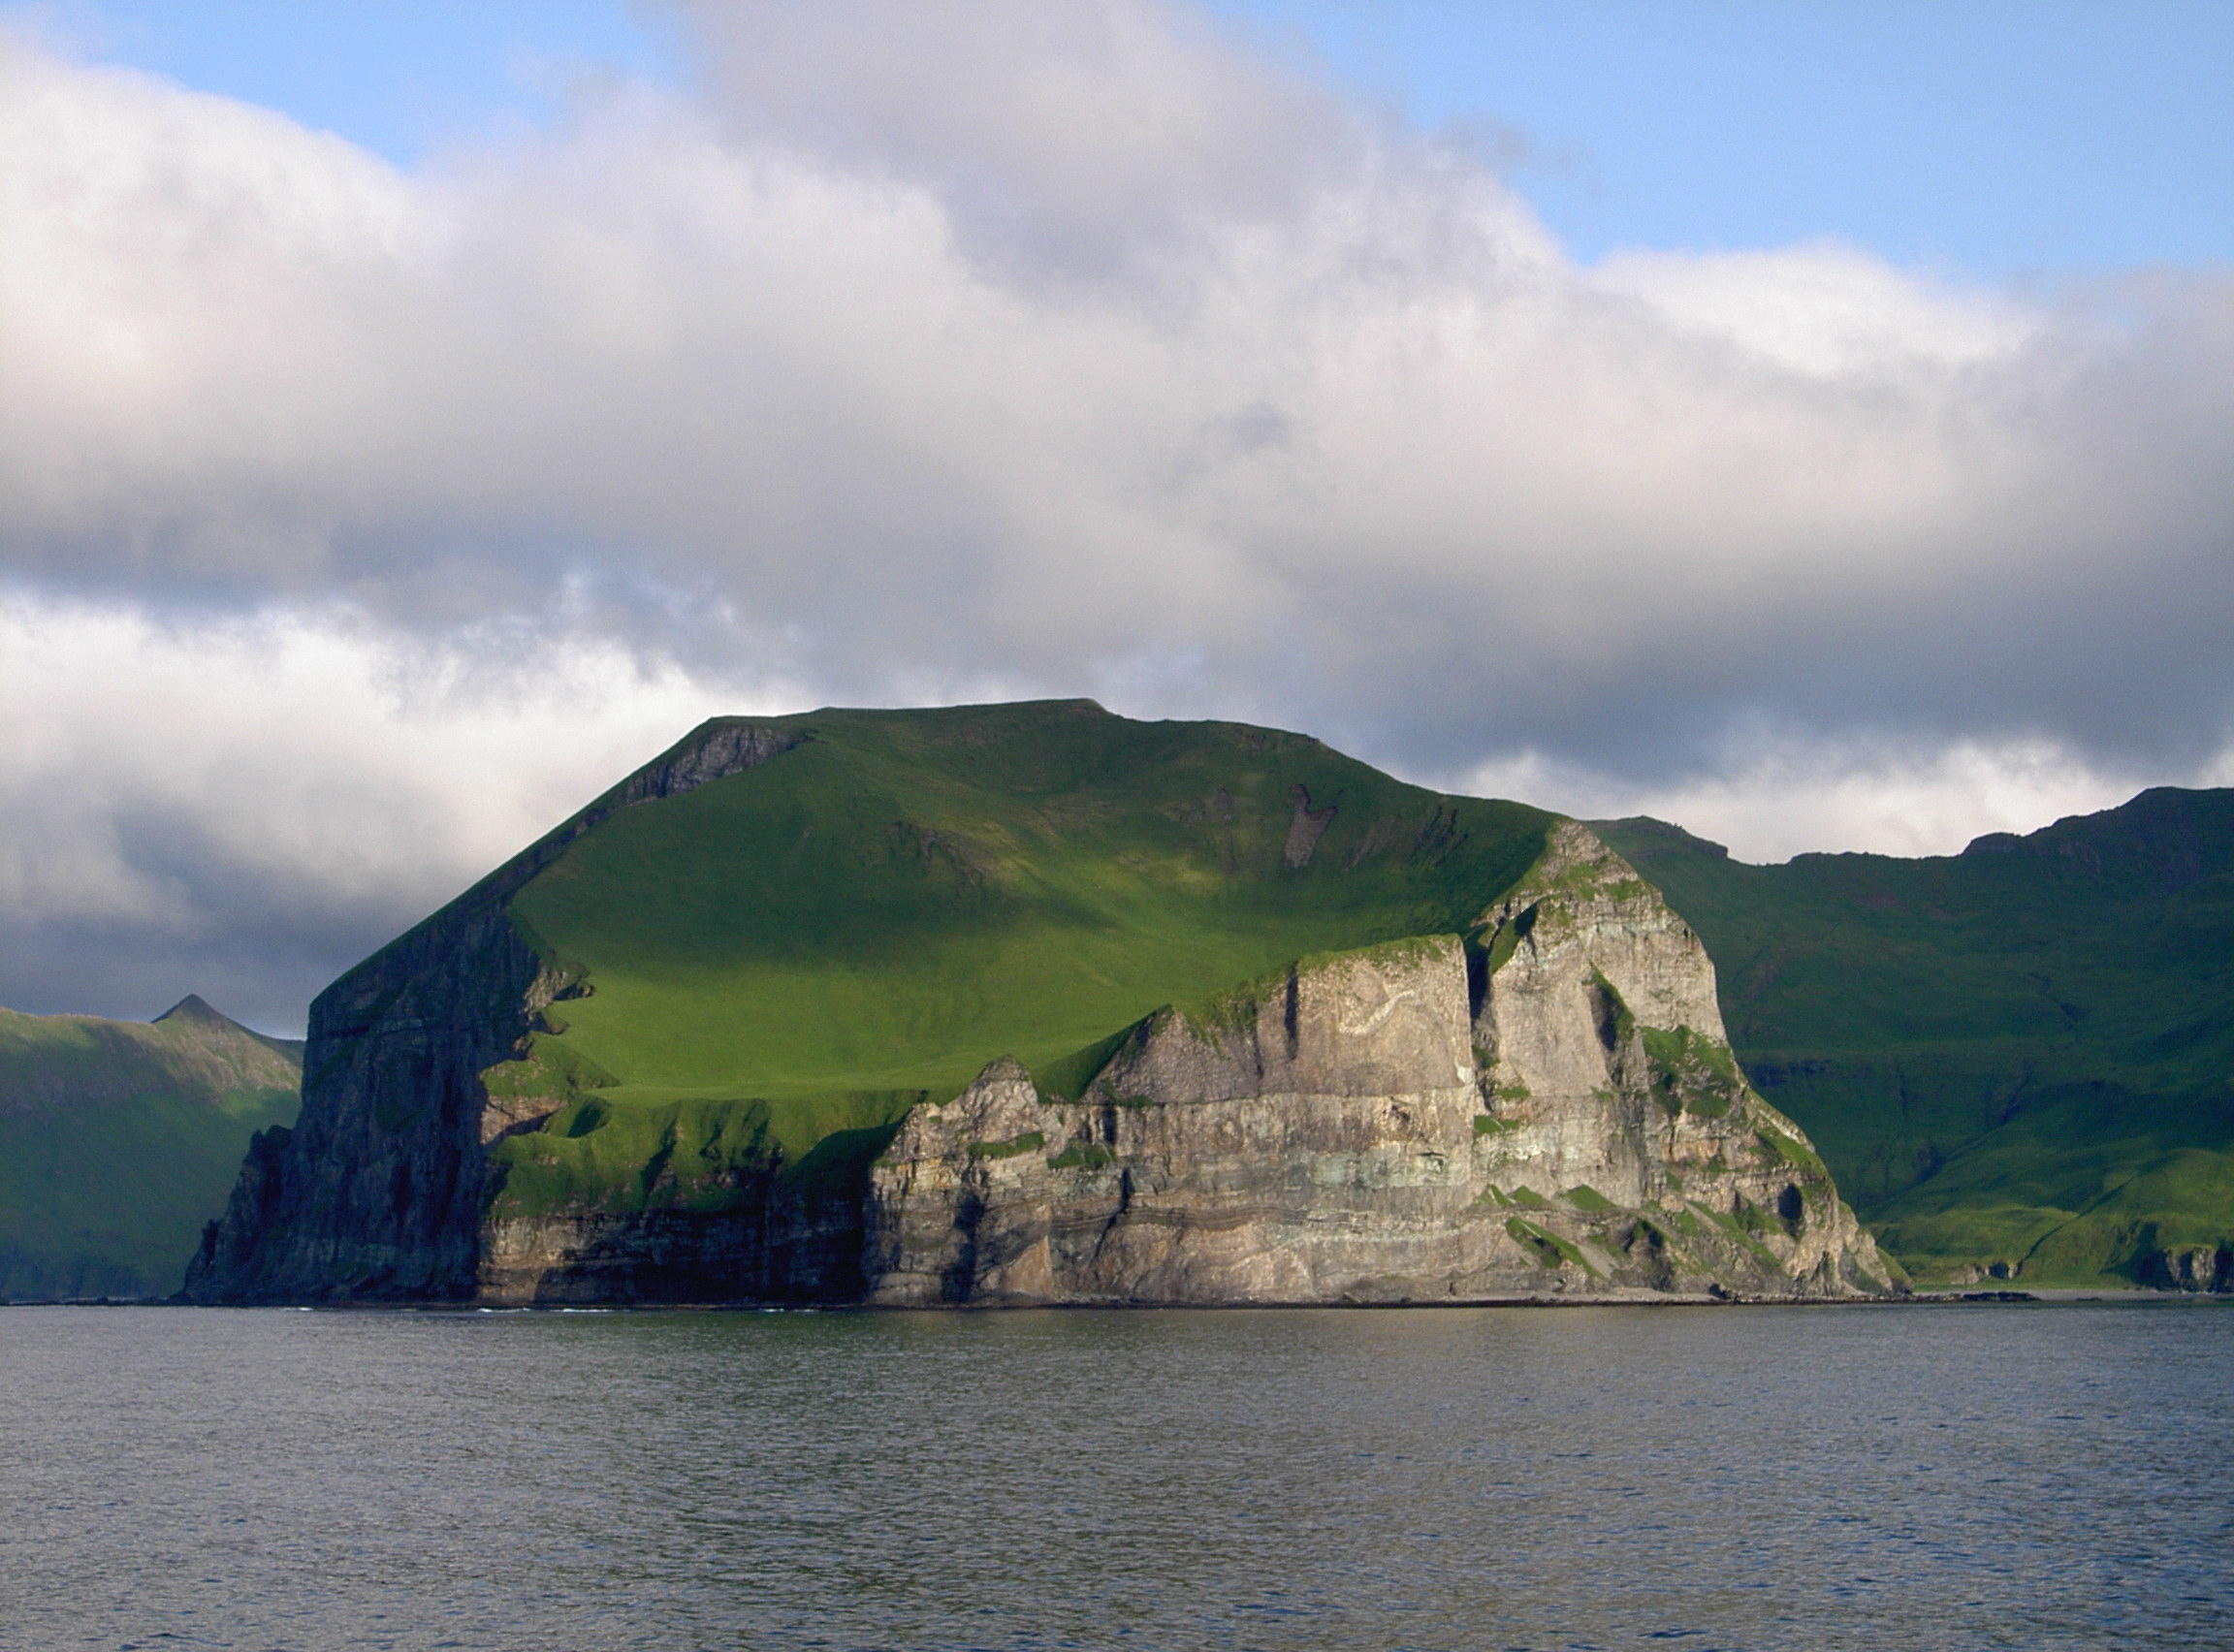 wilsons promontory christian dating site Cromarty property for sale   situated either side of the chanonry ness promontory,  with roots dating back as far as the 11th century, .